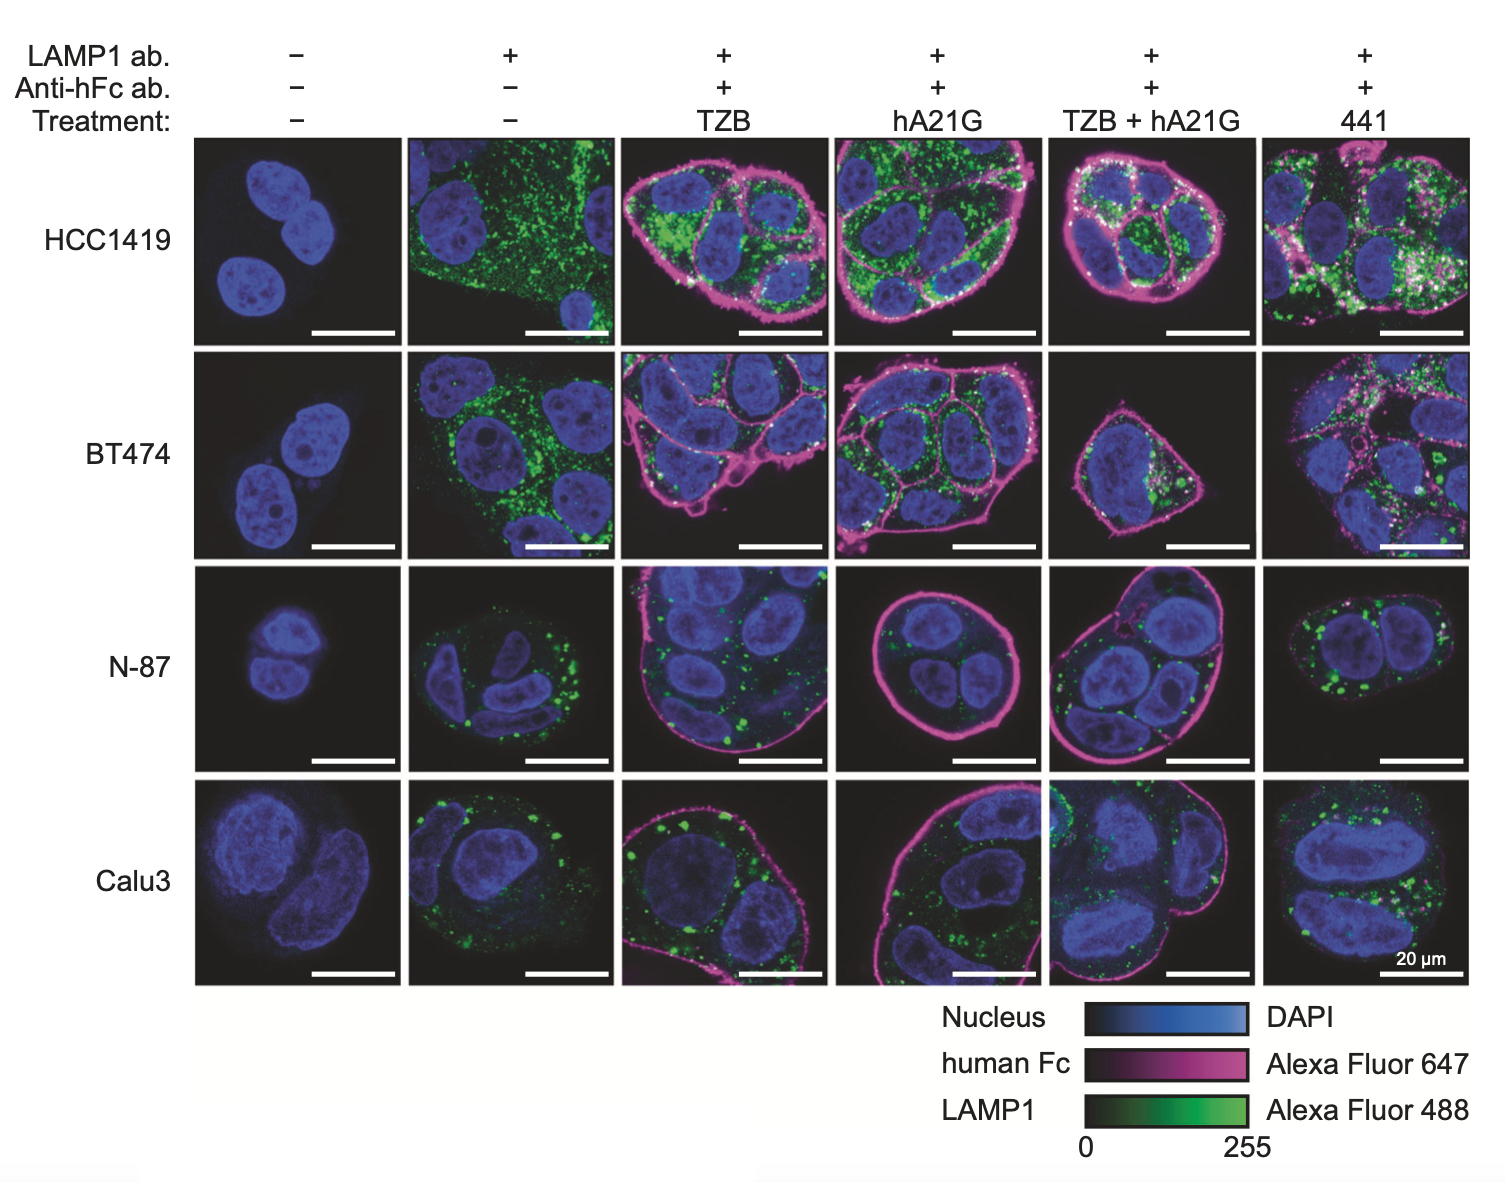 """The engineered bi-paratopic antibody termed """"441"""" induces internalization and degradation in HER2-overexpressing cell lines, while all controls do not. This is seen by the disappearance of the continuous staining (magenta) on the outside, and the appearance of punctate staining in lysosomes (green). This effect is only seen with this particular specially engineered biparatopic construct, while other similar antibodies do not show this. Because of this unique effectivity in tumor xenografts, the antibody is now further developed for clinical trials."""